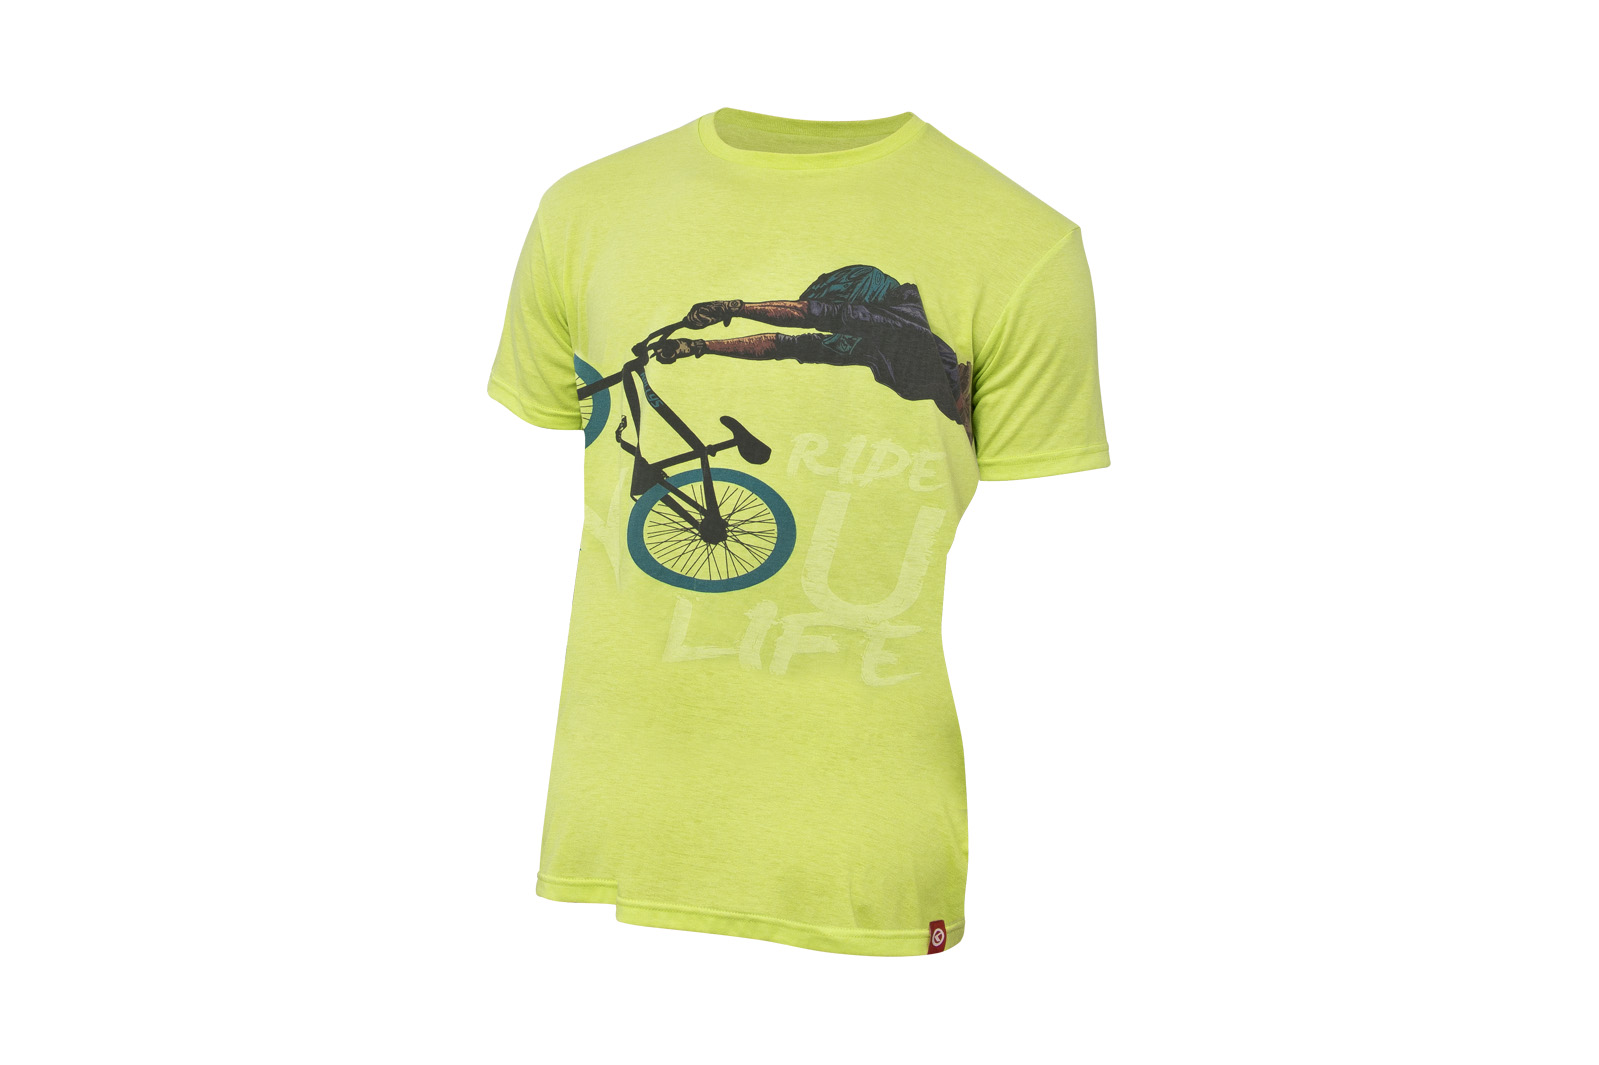 T-Shirt KELLYS DIRT kurzarm Lime - XL - T-Shirt KELLYS DIRT kurzarm Lime - XL